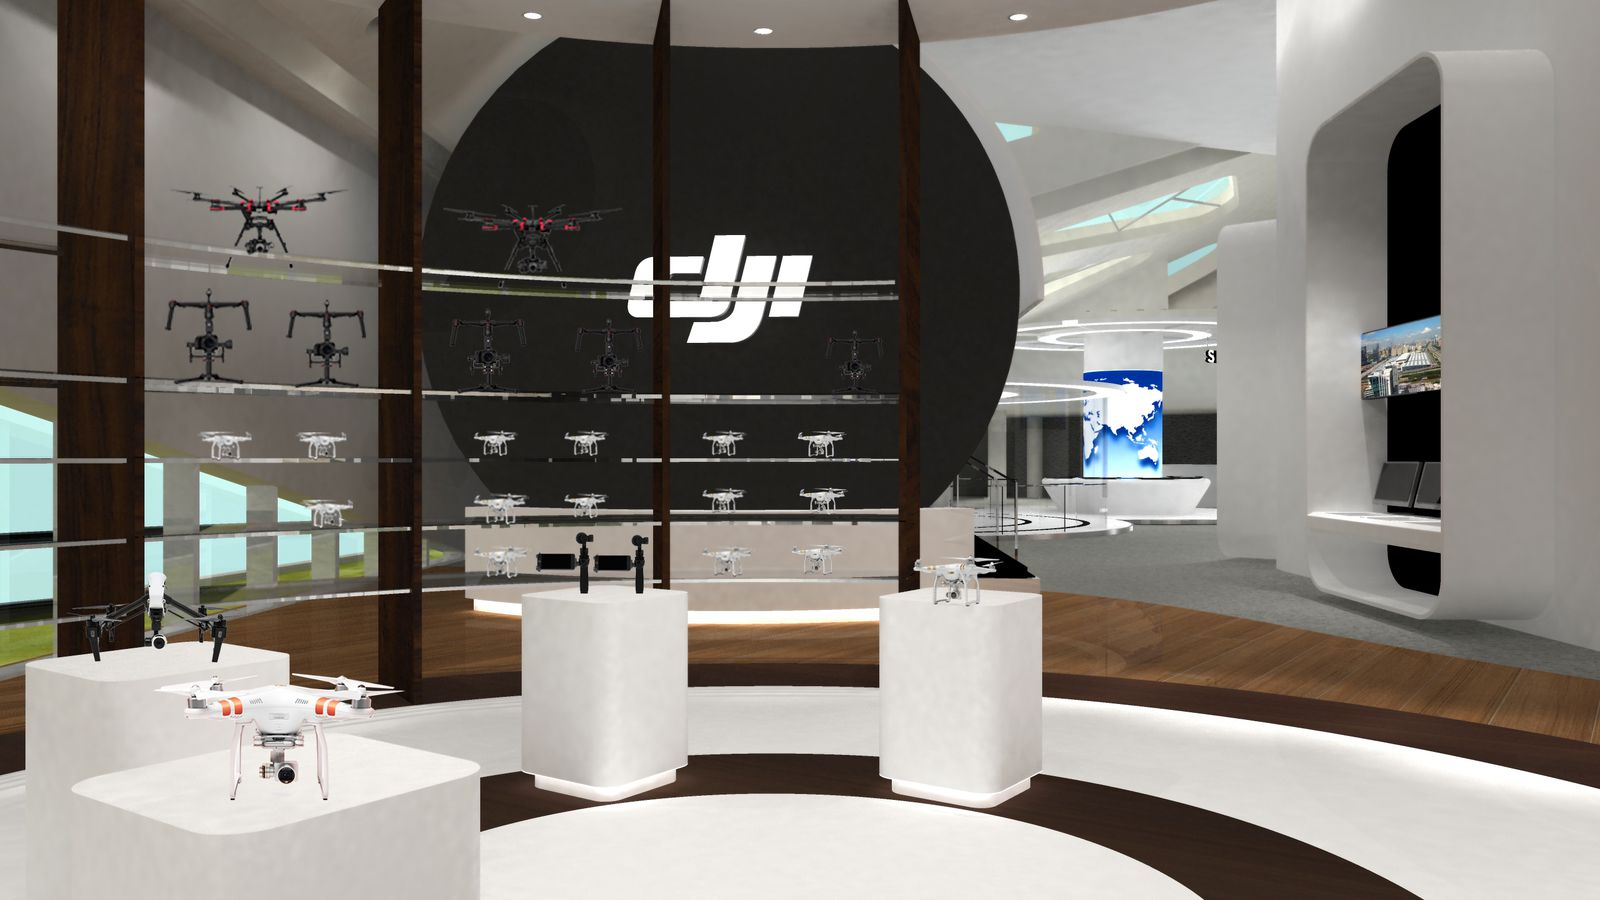 Best Dji Drone >> DJI's flagship store doesn't look like a great place to fly drones   The Verge